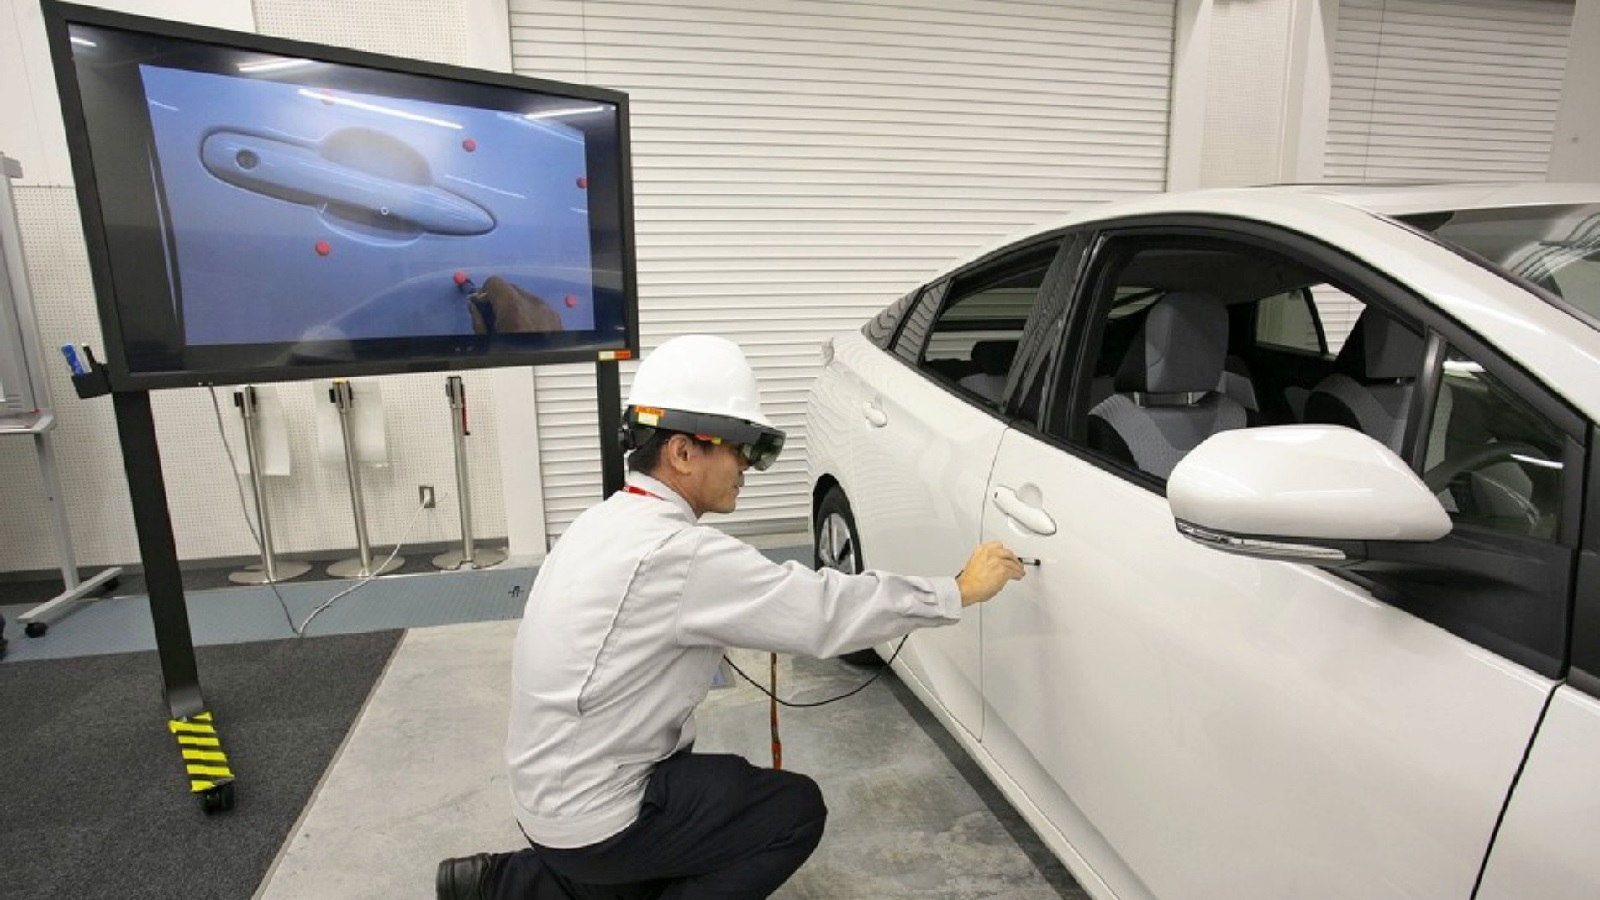 nikkei.com - Staff Writer - Microsoft brings holo-goggles to Toyota production lines